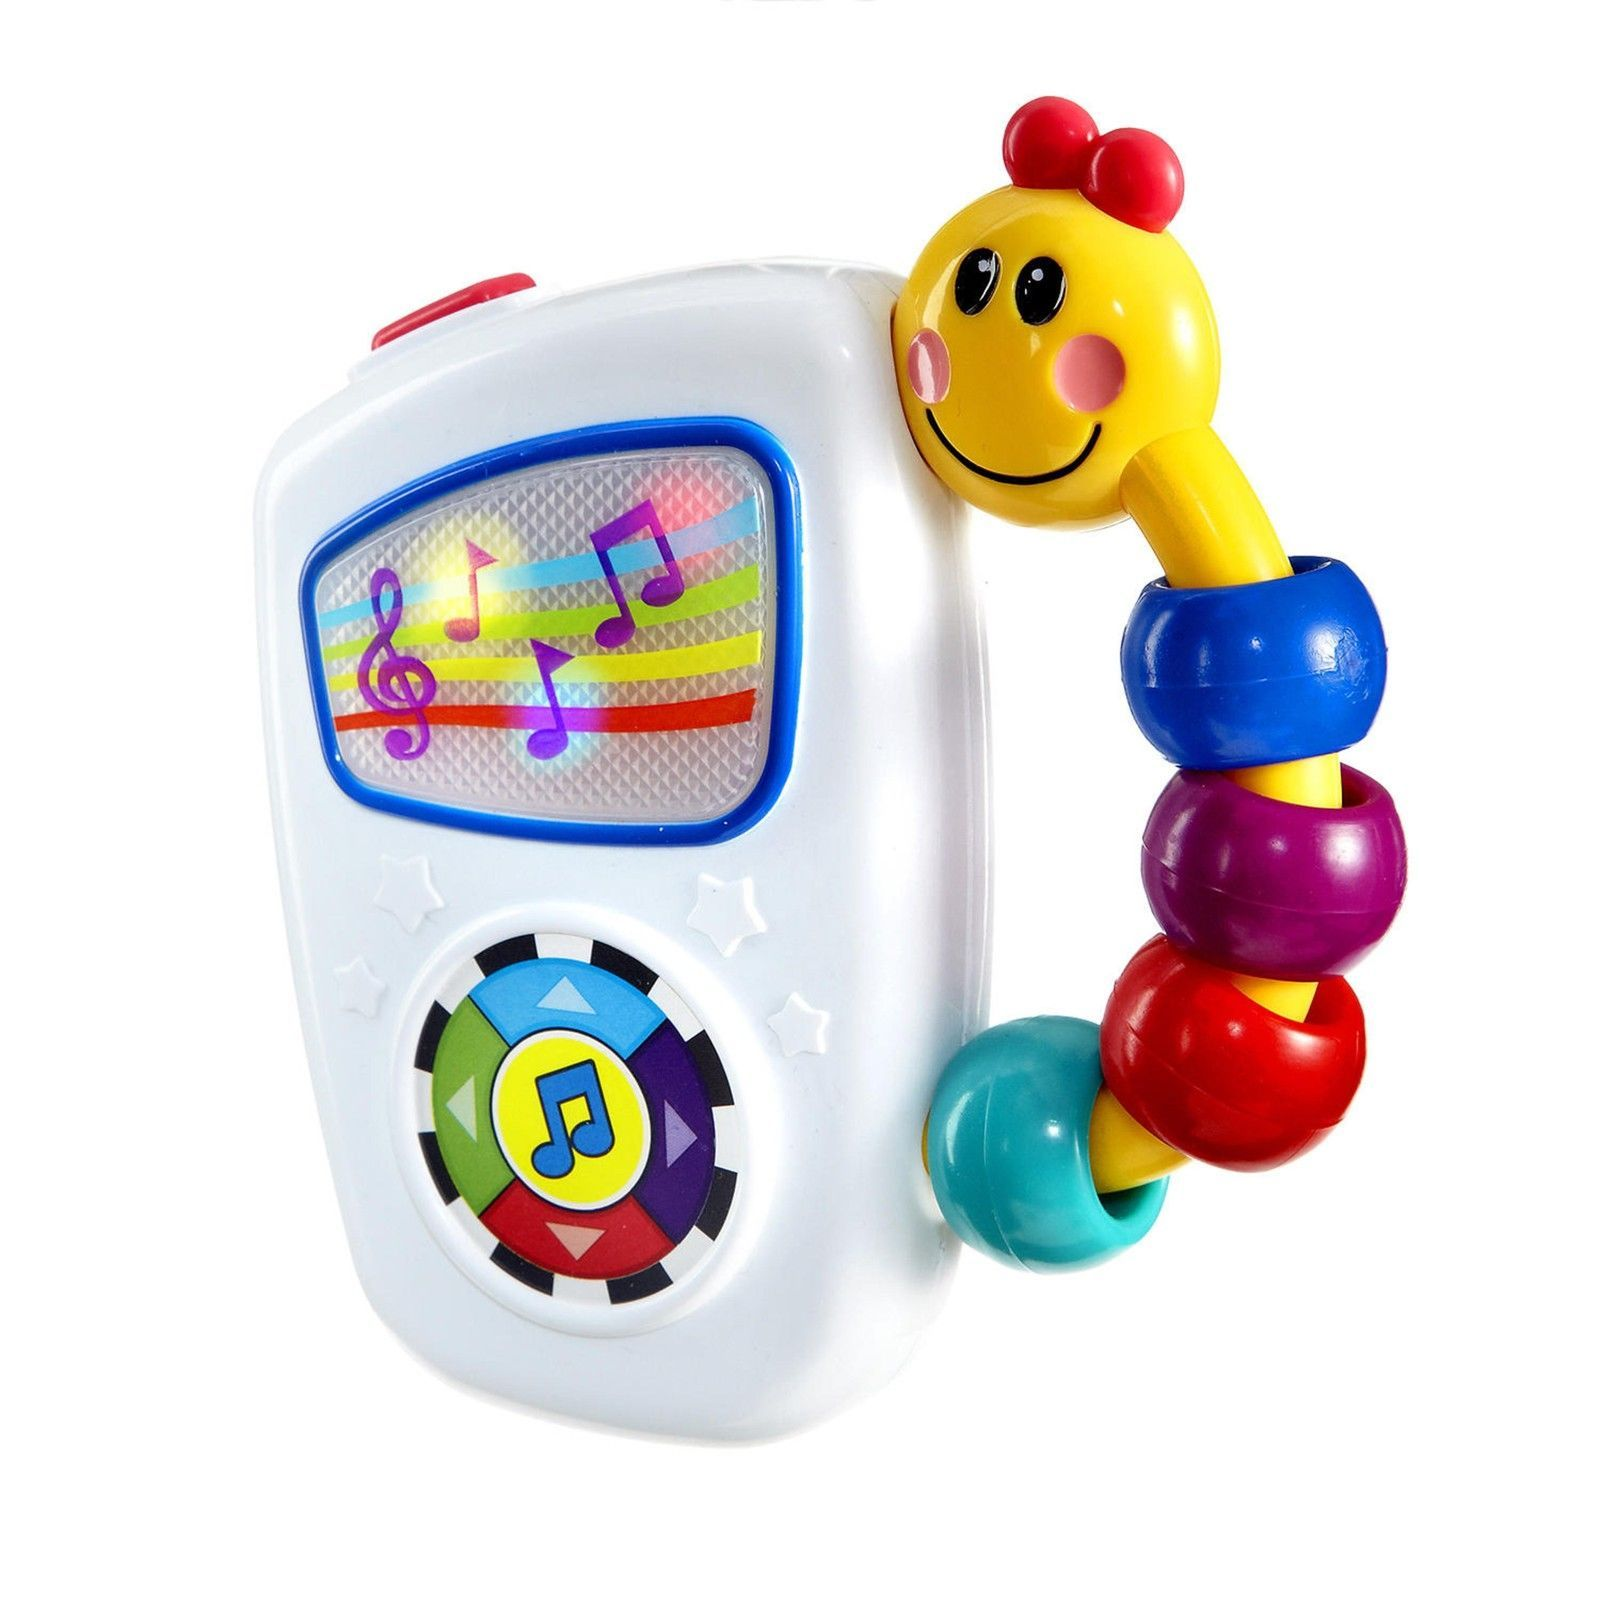 Learning toy baby kids educational toddler toys learn gift children